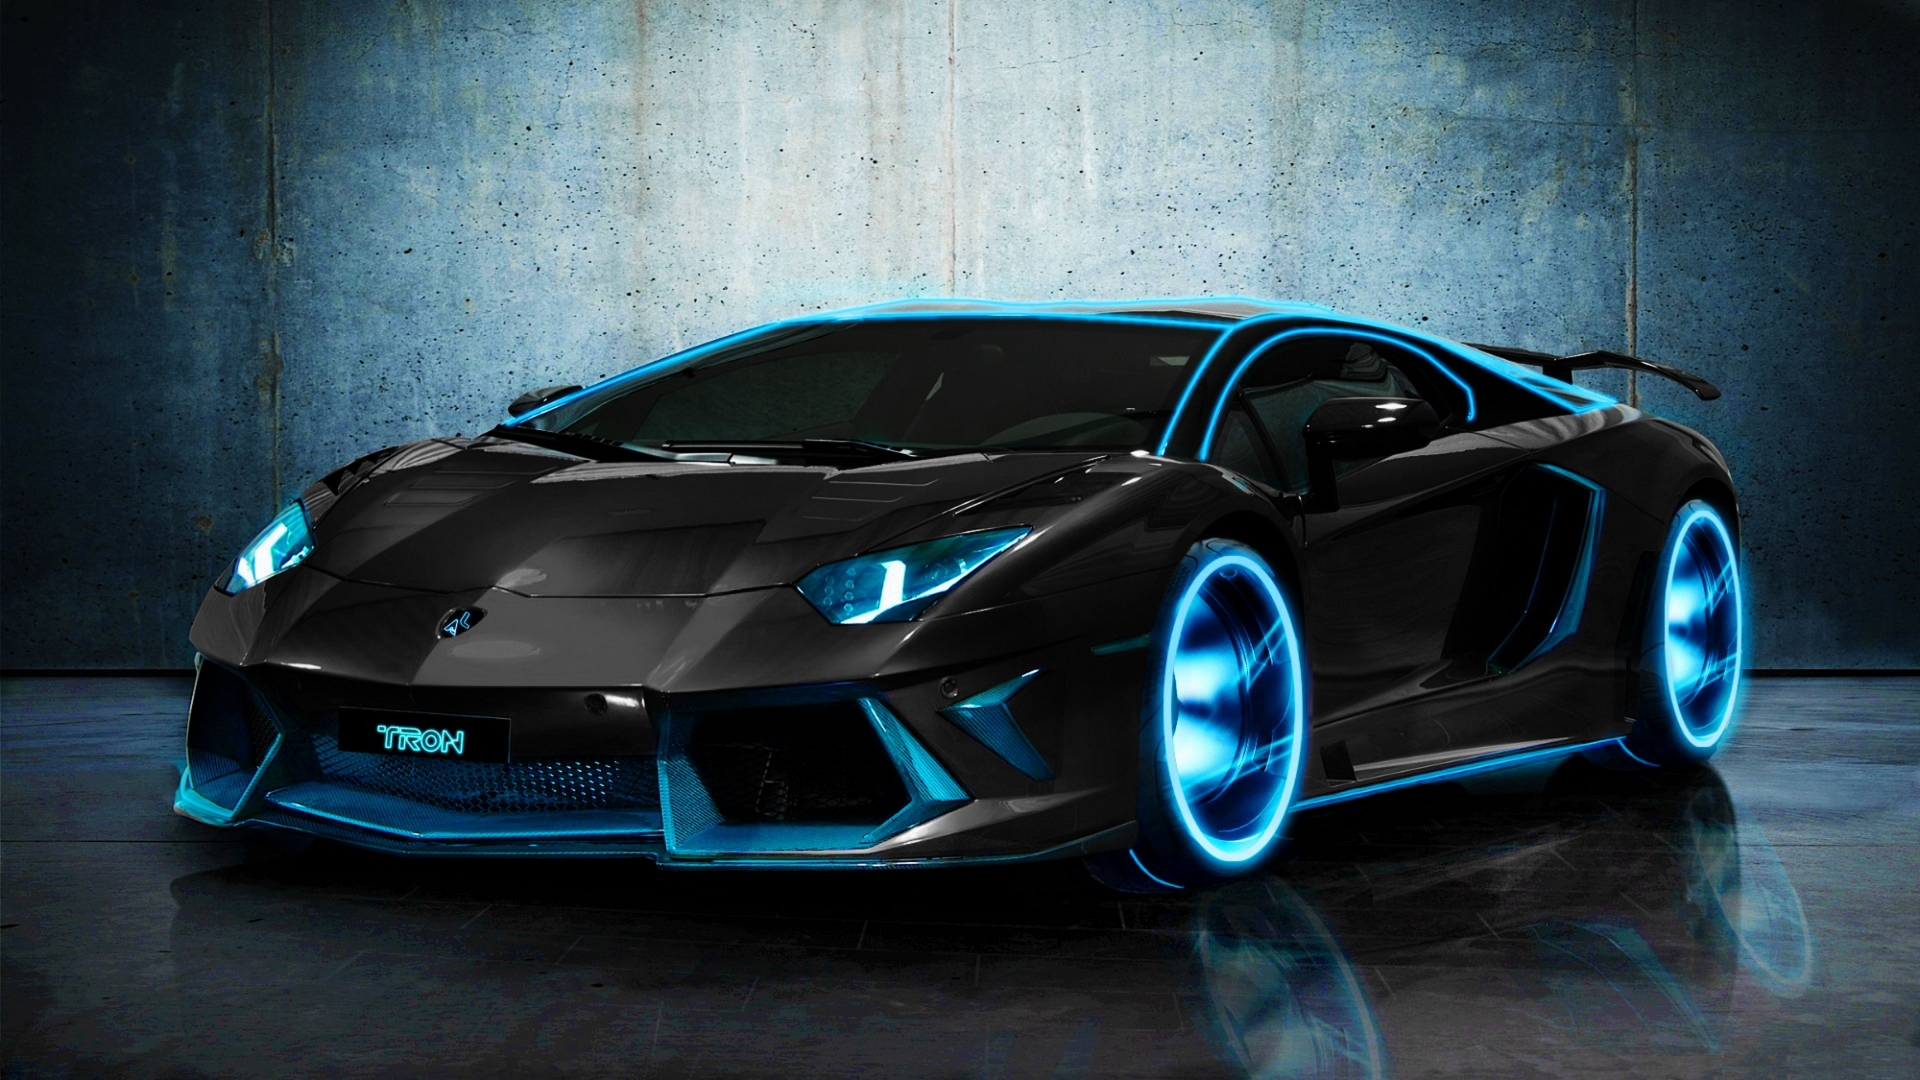 Lamborghini Car Hd Wallpaper - Lamborghini 2016